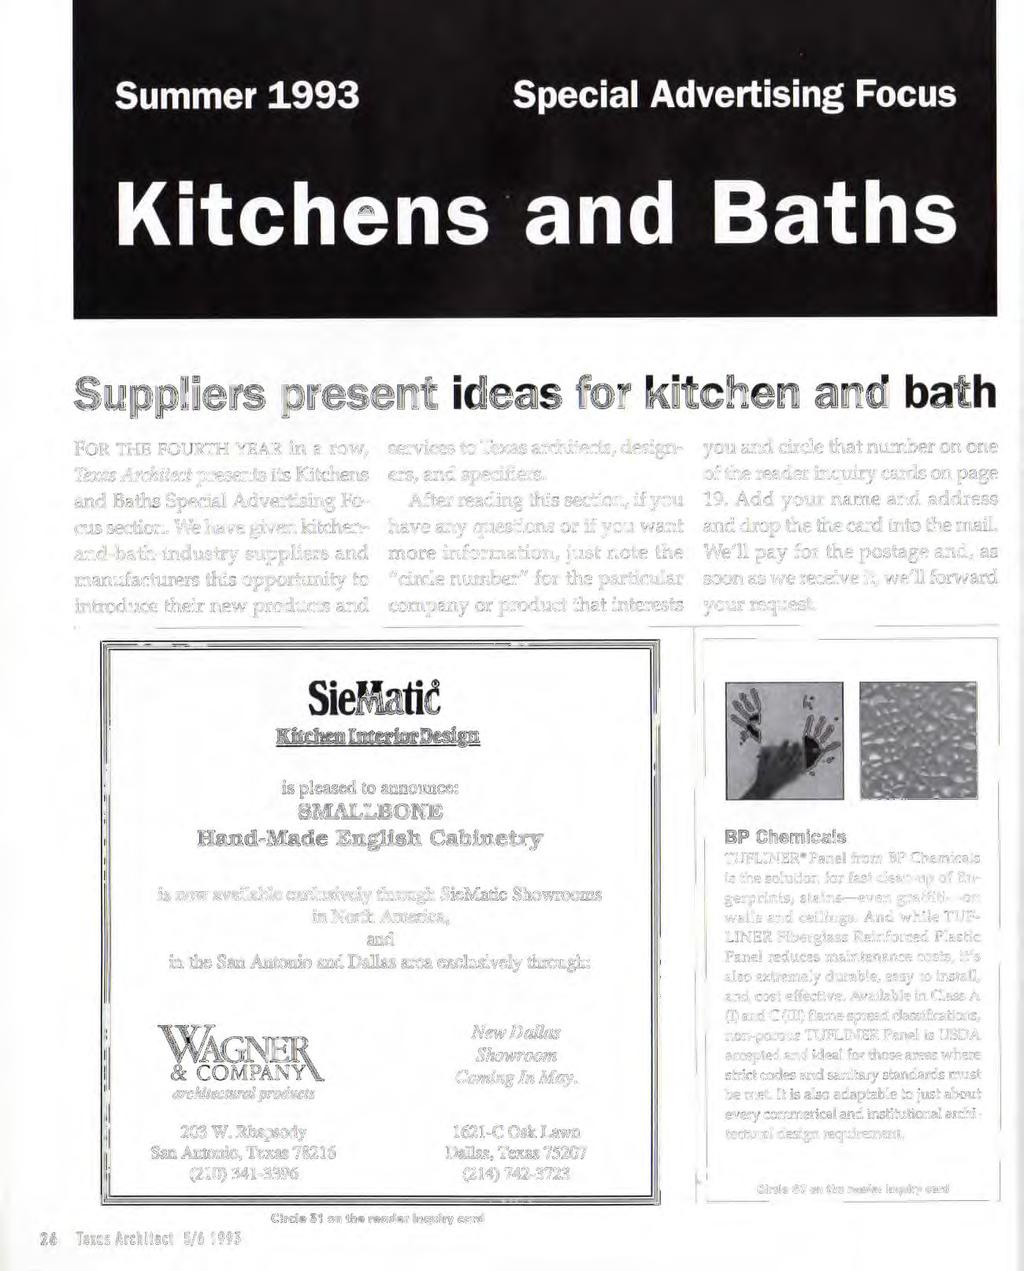 Suppliers present ideas for kitchen and bath FO R TH E FOURTH YEAR in a.row, Texas Architect presents its Kitchens and Baths Specia l Advertising Focus section.